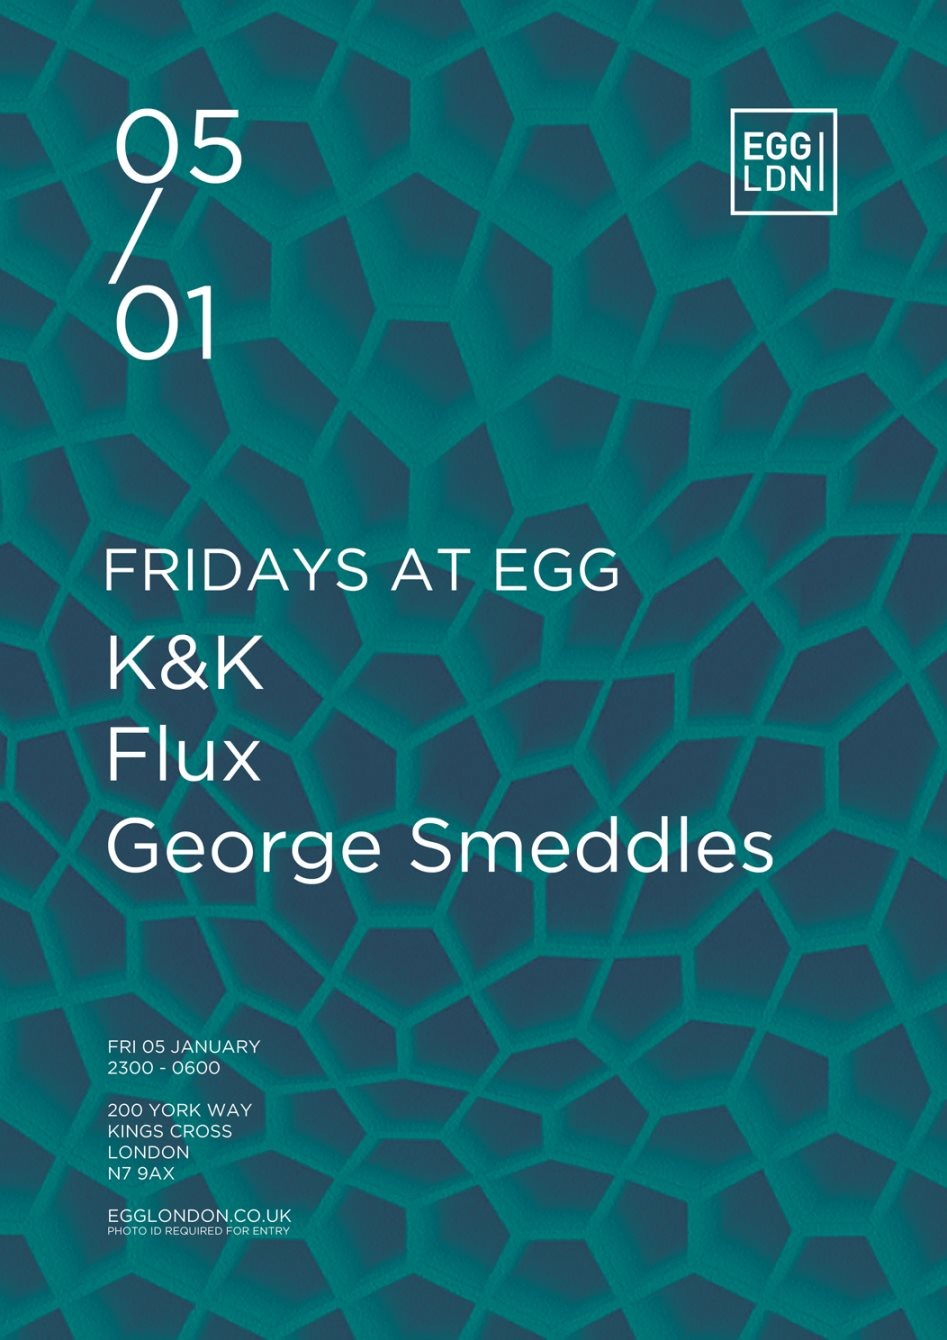 Fridays at EGG: K&K, Flux, George Smeddles